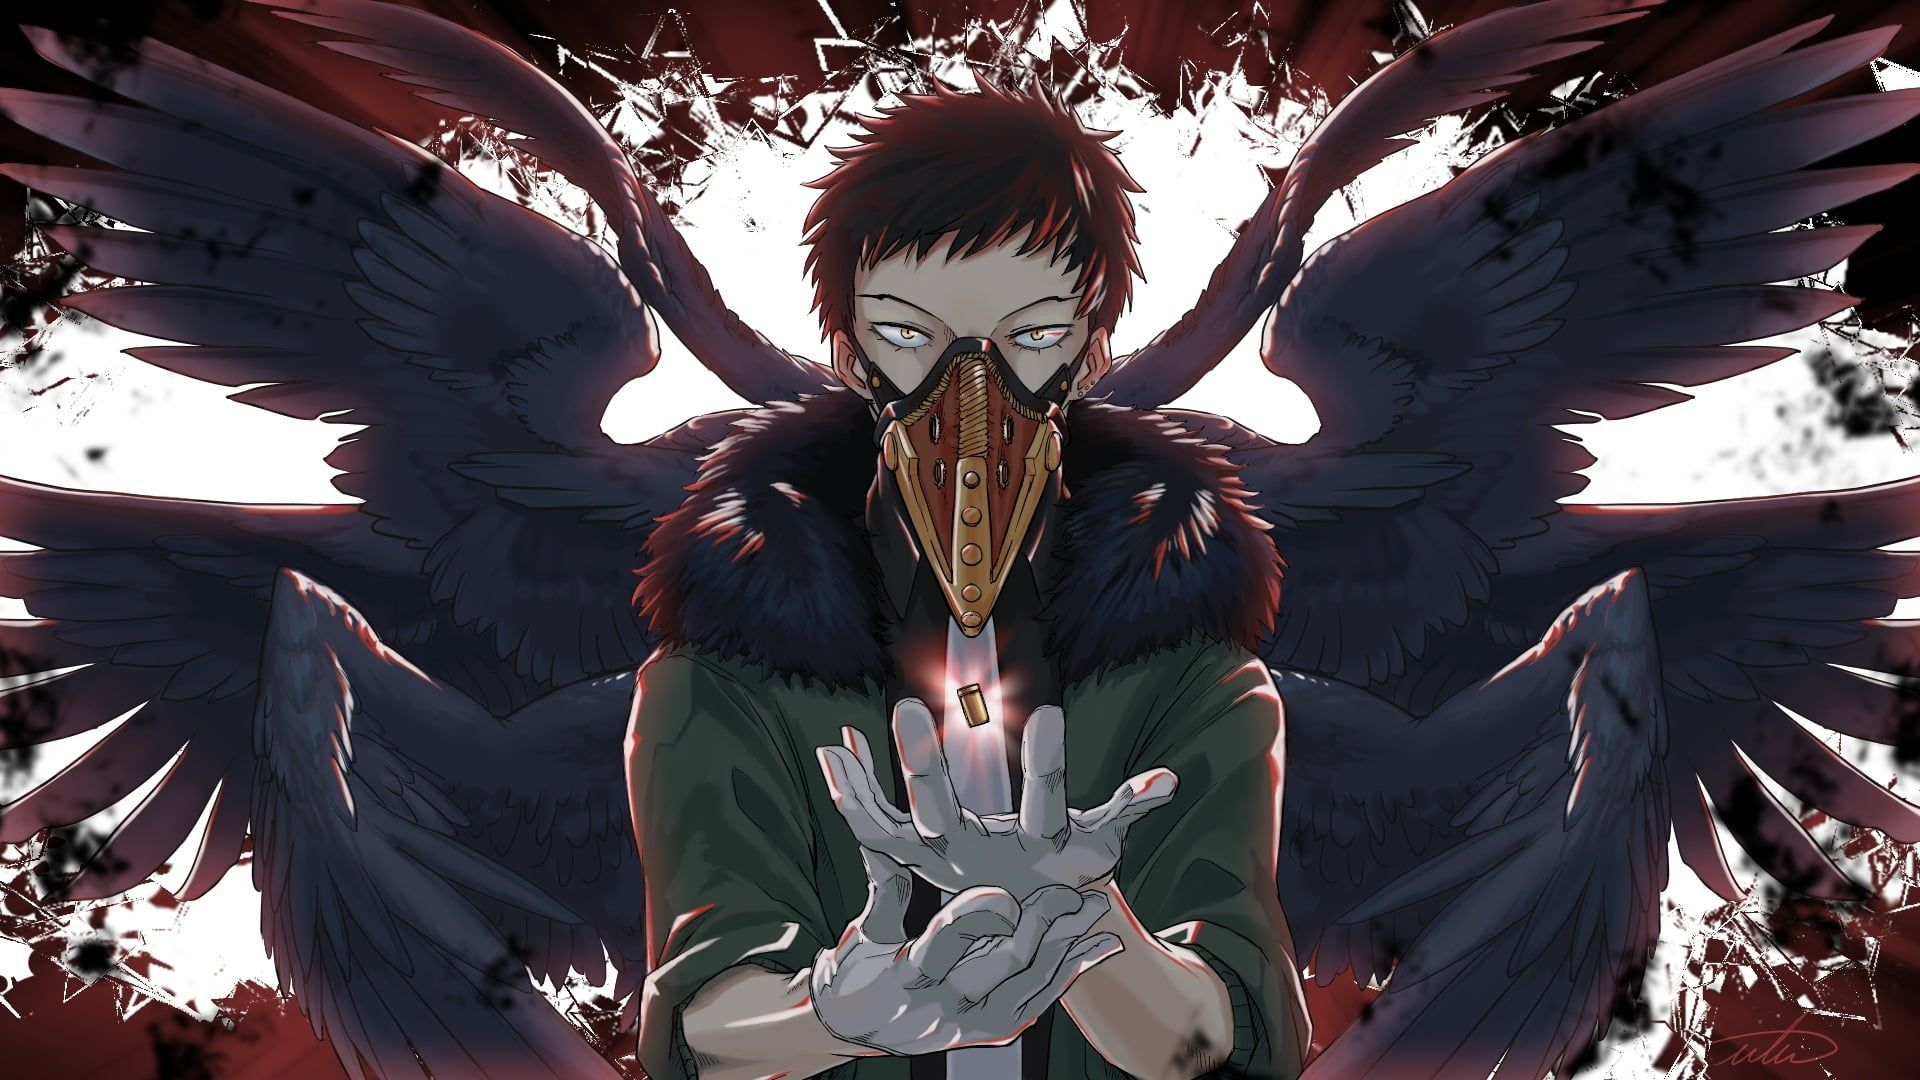 My Hero Academia Overhaul Wallpapers Top Free My Hero Academia Overhaul Backgrounds Wallpaperaccess I take notice of all feedback i receive, so commenting and faving is greatly. my hero academia overhaul wallpapers